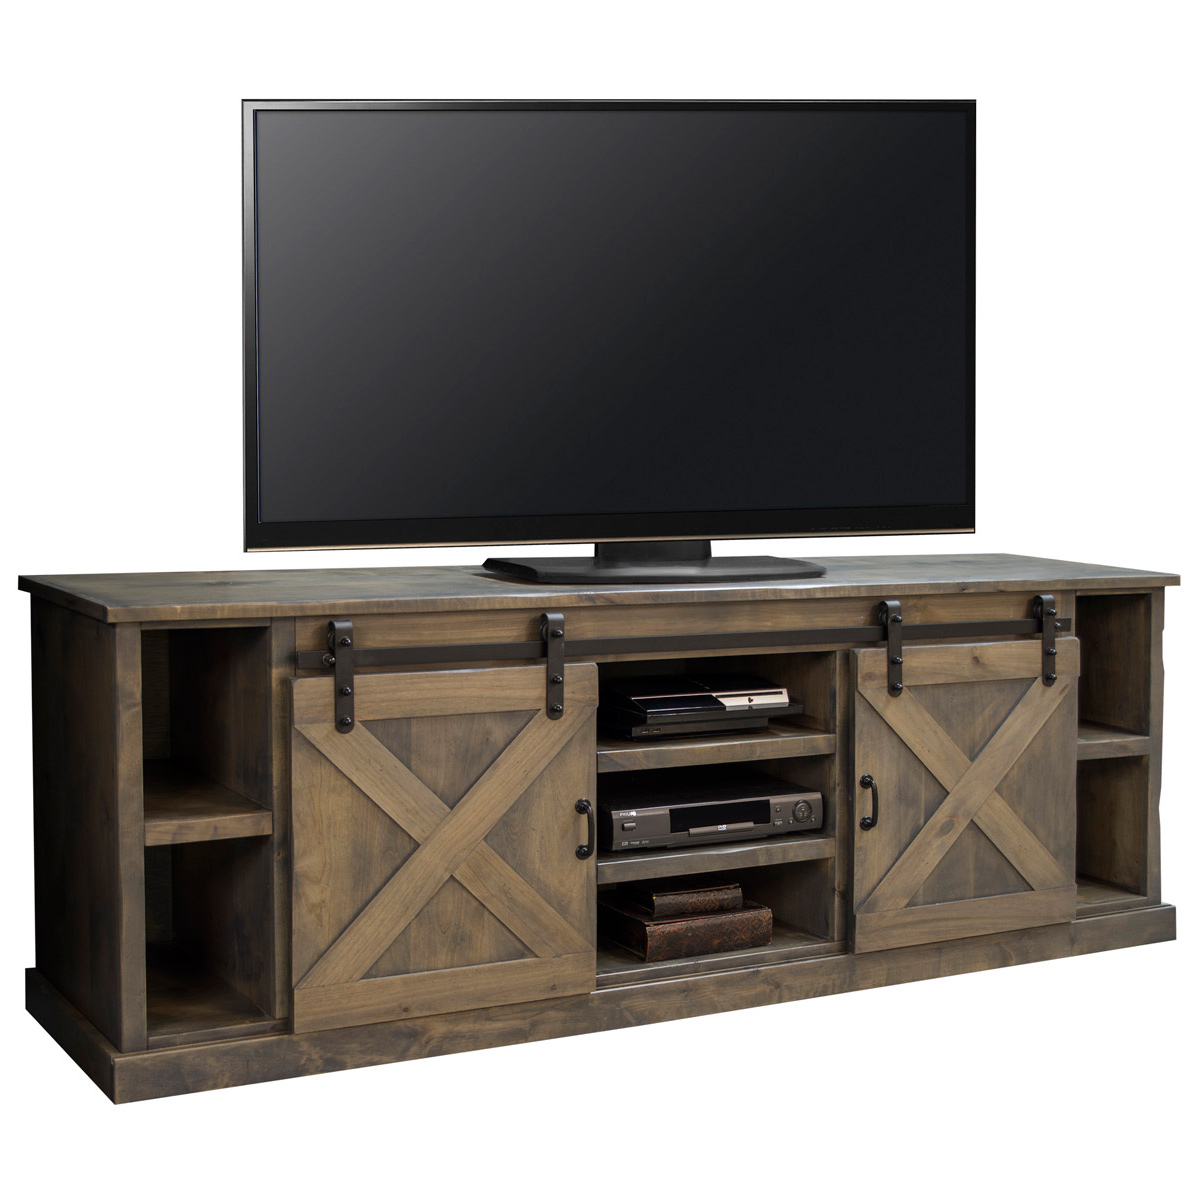 Farmhouse Corner Tv Stand Plans Legends Furniture Fh1425 Bnw Farmhouse 85 Quot Tv Stand